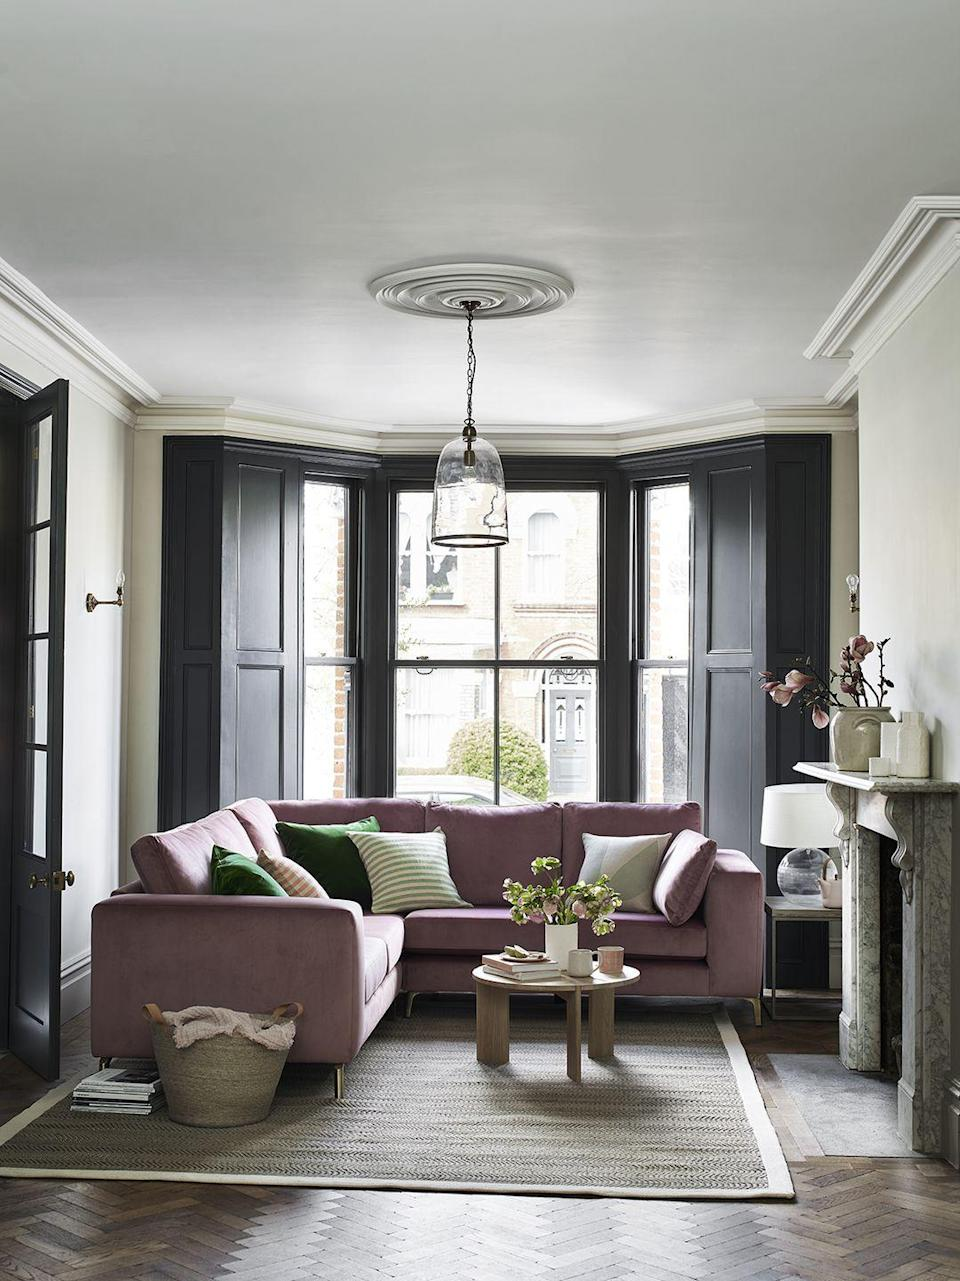 """<p>A surprising second place, pink was the second most popular colour for sofas in 2021. Requiring a keener eye than simple grey to avoid an overly saccharine outcome, rich shades of pink in tactile fabrics – a textured wool or velvet – can be a versatile and sophisticated choice. </p><p>Pictured: <a href=""""https://www.dfs.co.uk/fabric-sofas/exclusive-brand-fabric-sofas/q/brands/House-Beautiful"""" rel=""""nofollow noopener"""" target=""""_blank"""" data-ylk=""""slk:House Beautiful Darcy Sofa at DFS"""" class=""""link rapid-noclick-resp"""">House Beautiful Darcy Sofa at DFS</a> </p>"""